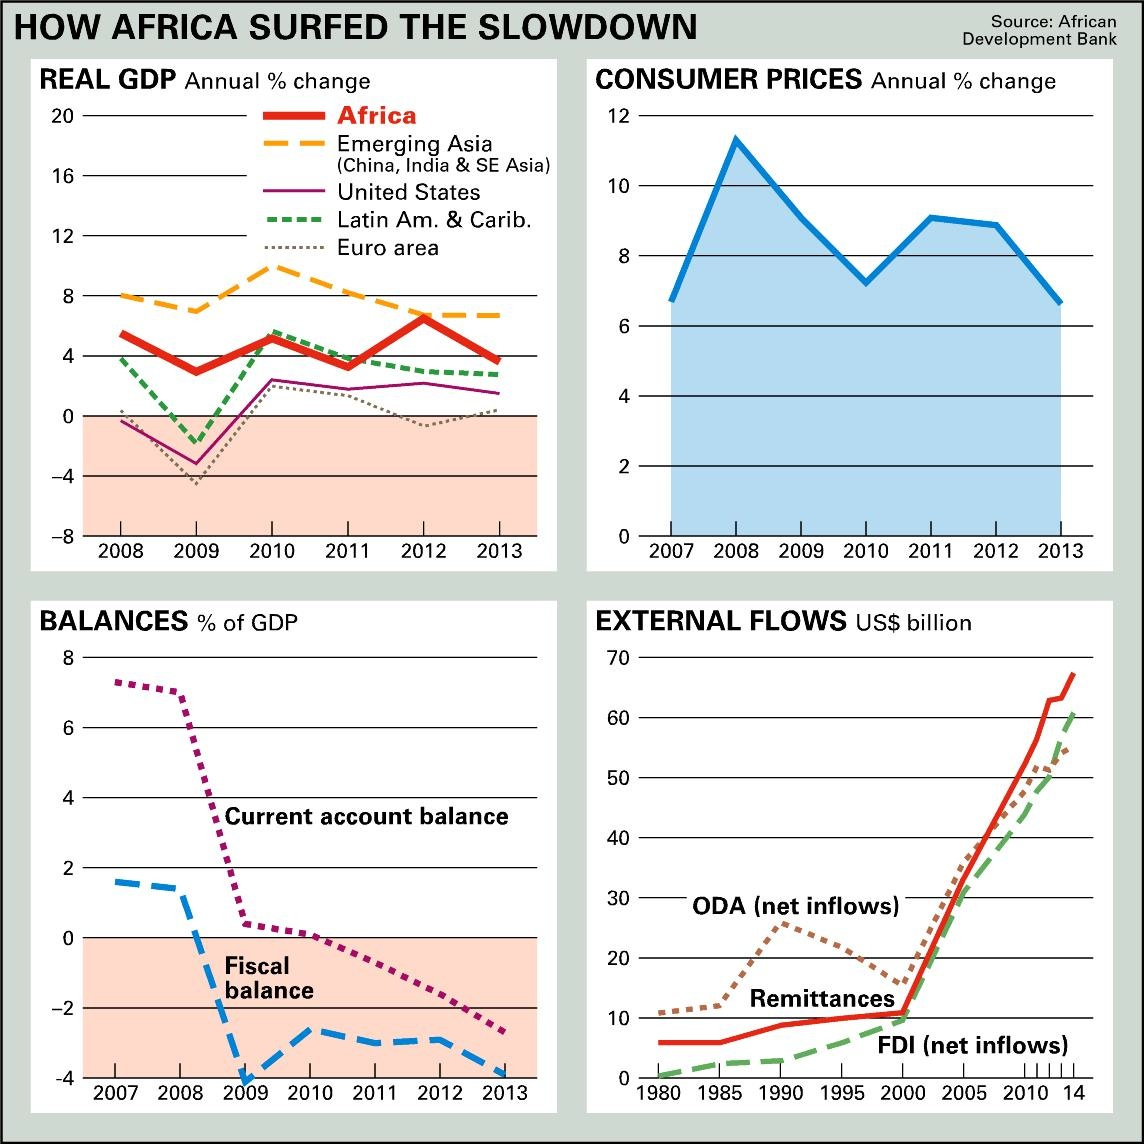 How Africa surfed the slowdown